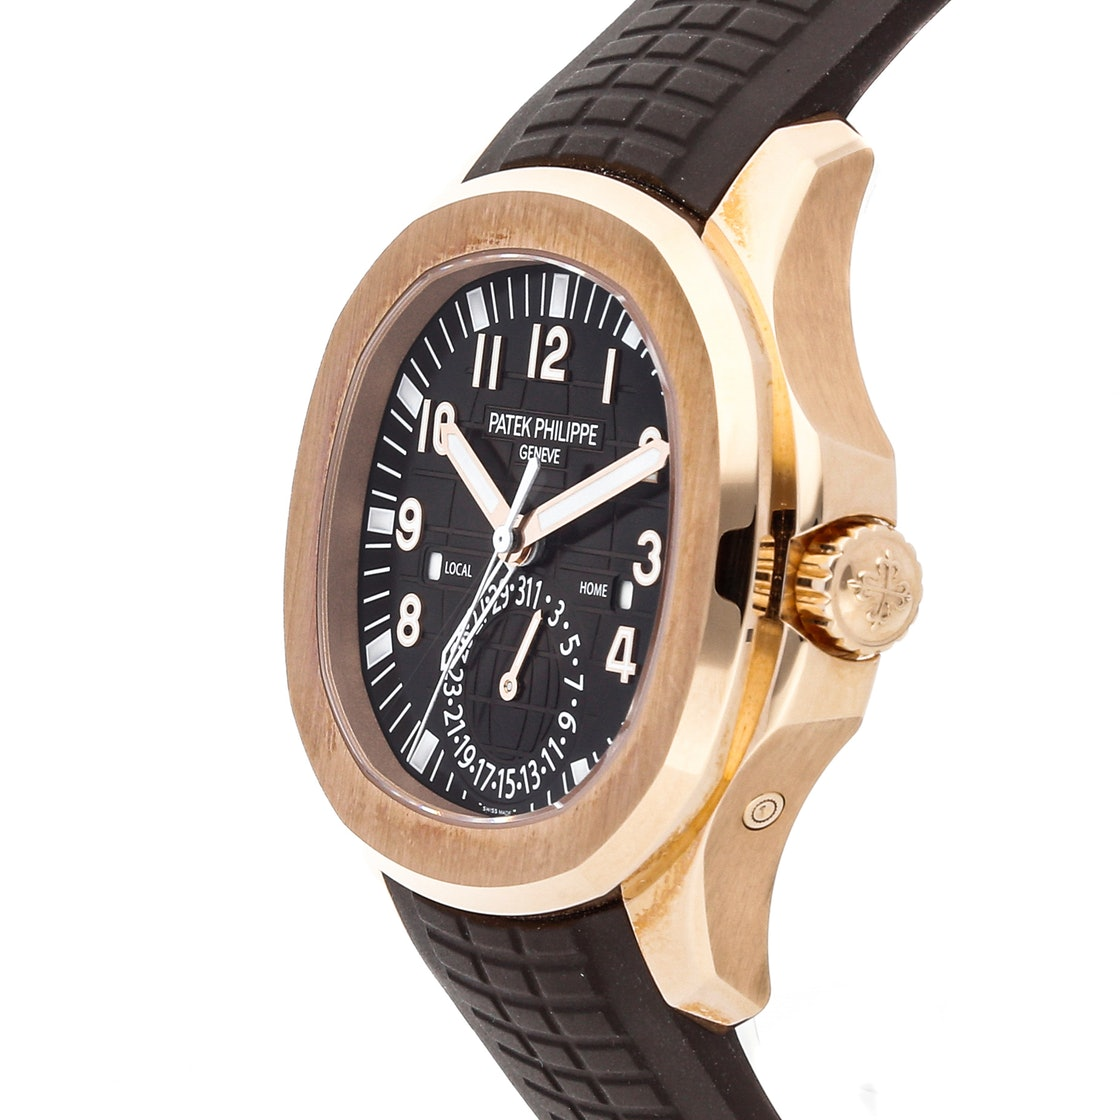 Patek Philippe Aquanaut Dual Time 5164R-001